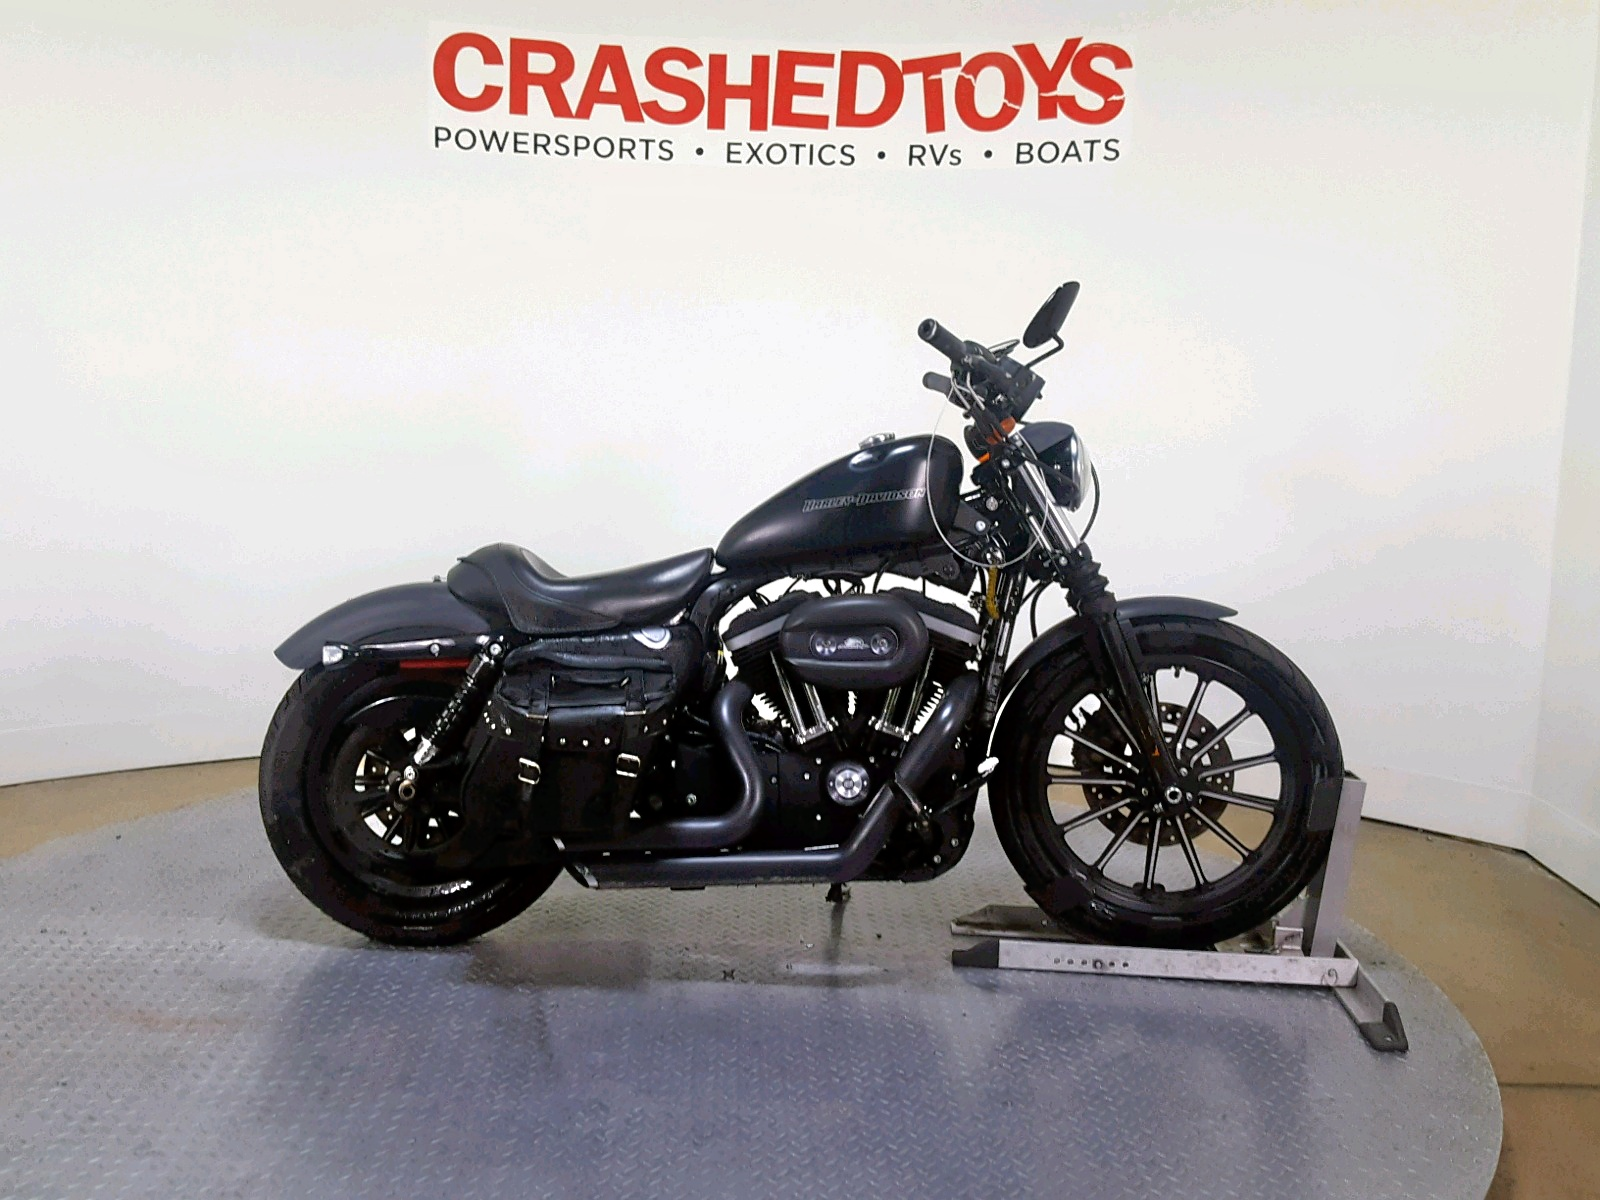 Salvage 2010 Harley-Davidson XL883 N for sale